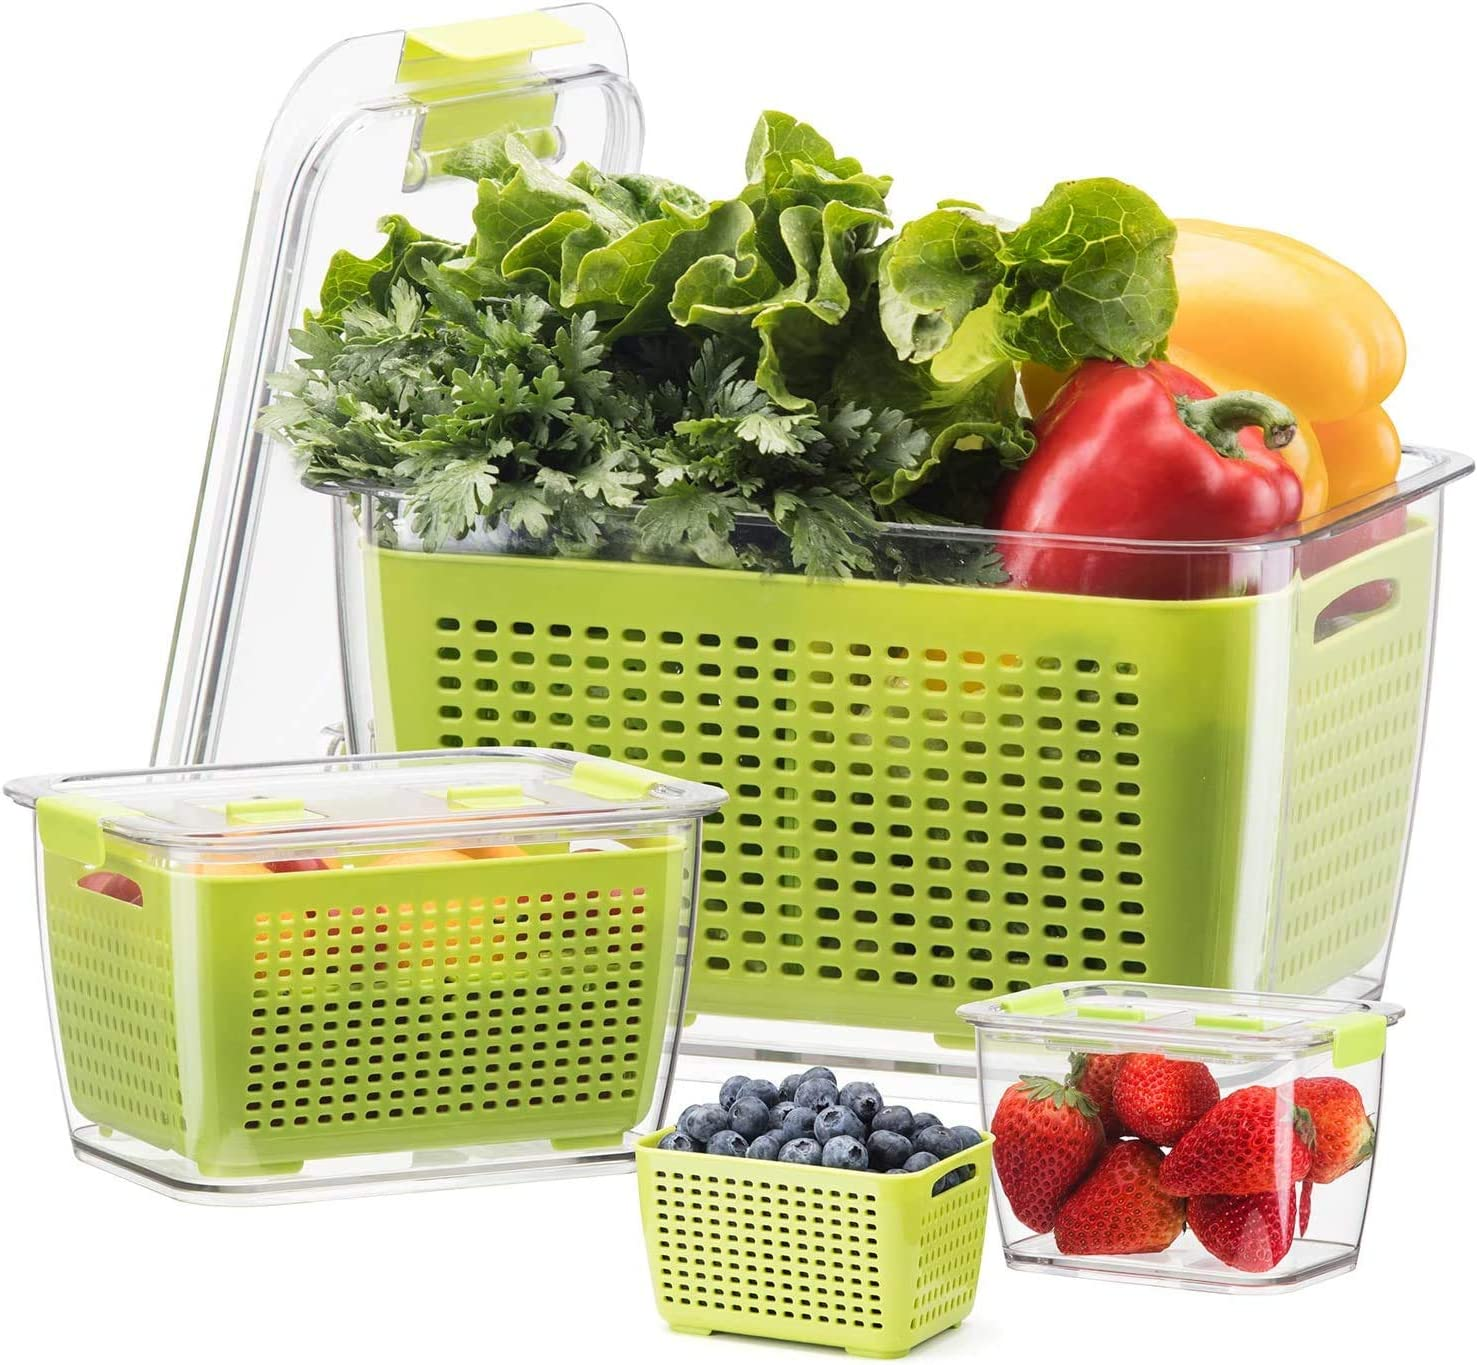 LUXEAR Fresh Container, 3PACK Produce Saver Container BPA Free Vegetable Storage Containers Fruit and Salad Partitioned Food Storage Container with Vents Stay Fresh Containers for Refrigerator